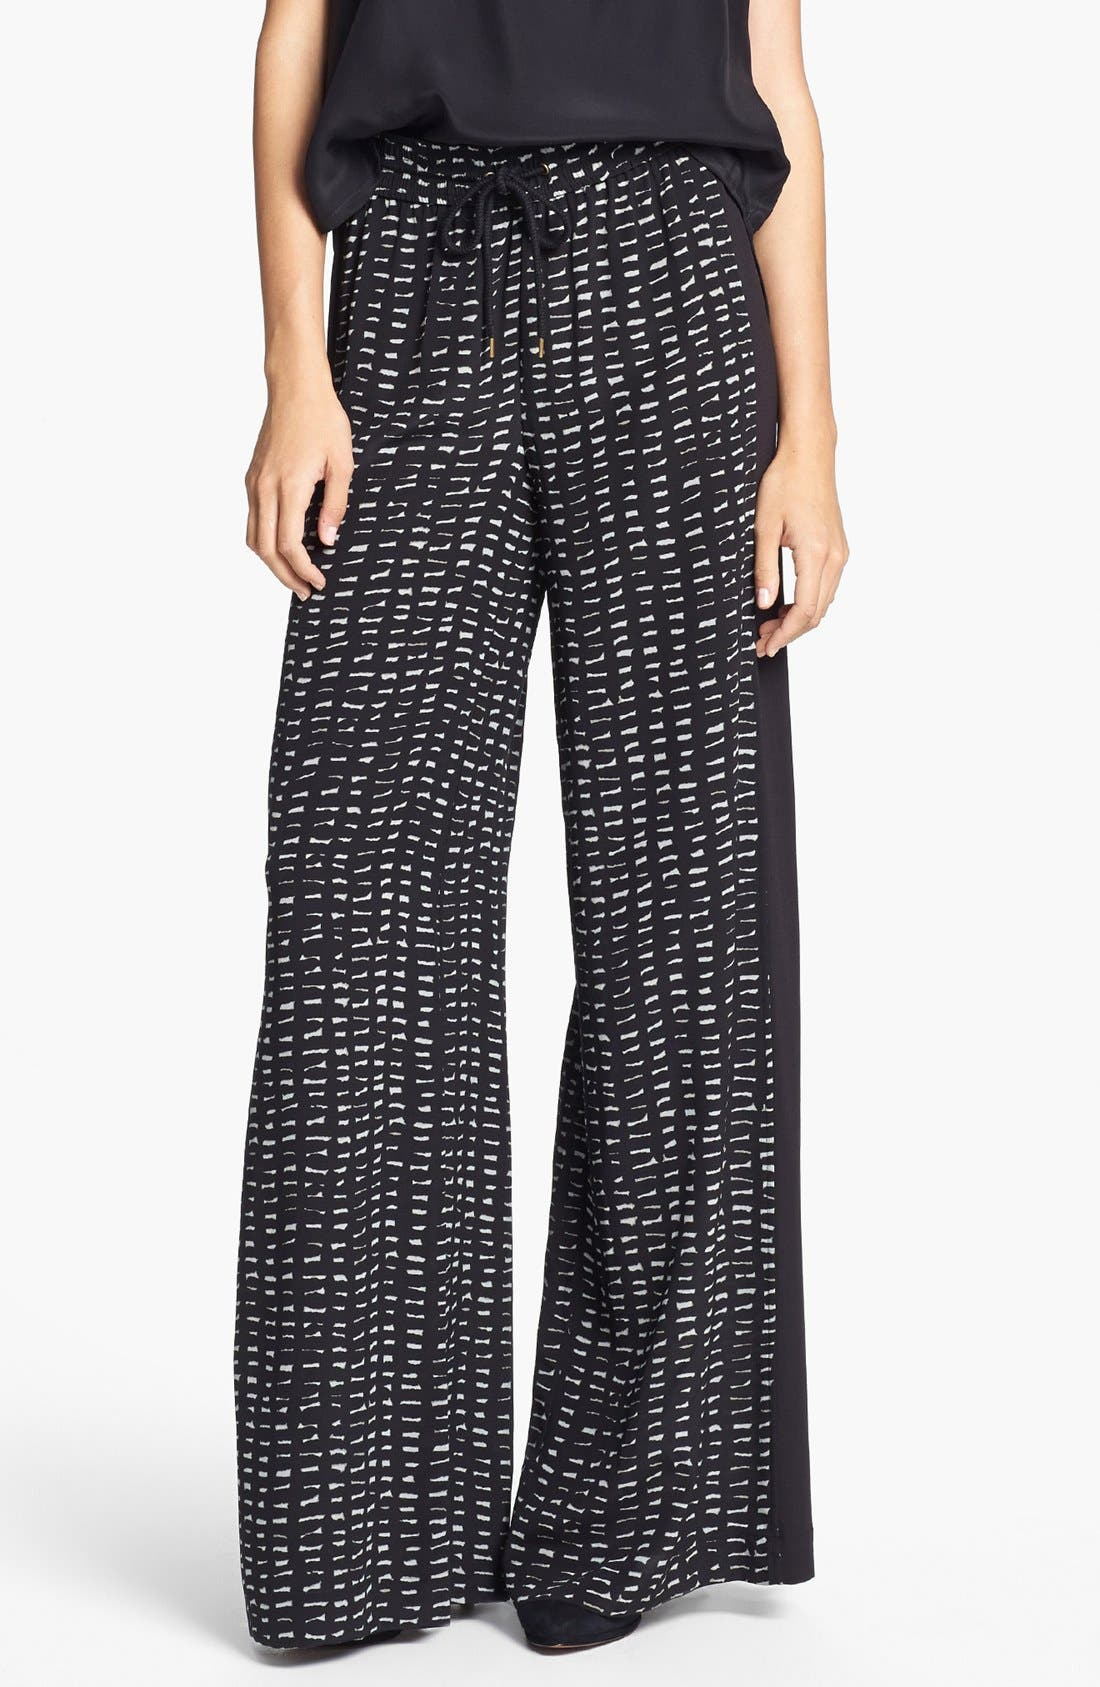 Alternate Image 1 Selected - Rachel Zoe 'Enzie' Drawstring Pants (Long)